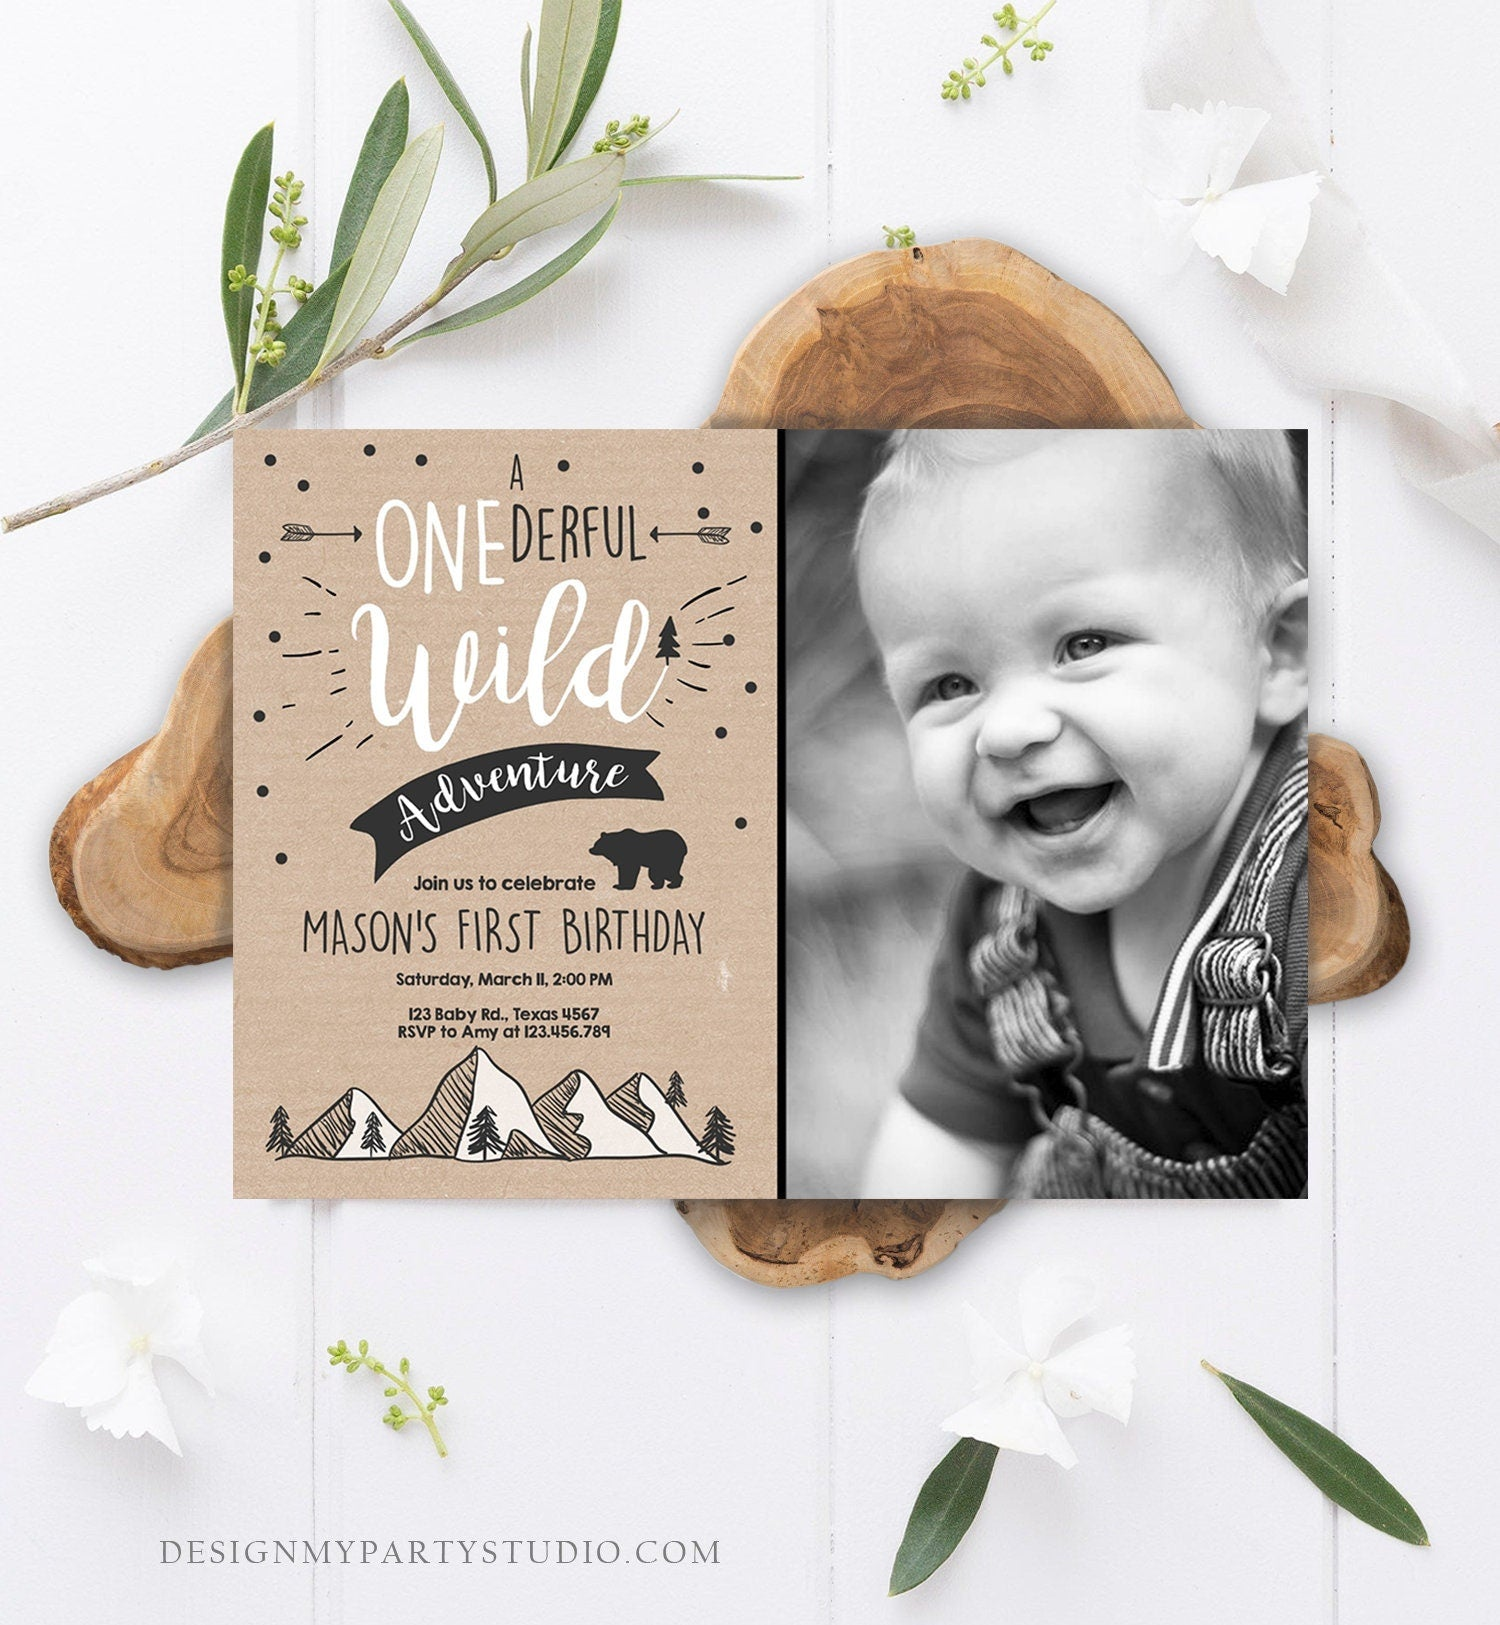 Editable A Onederful Wild Adventure First Birthday Invitation Wild Things Boy Mountains Bear Outdoor Paper Brown Photo Corjl Template 0083